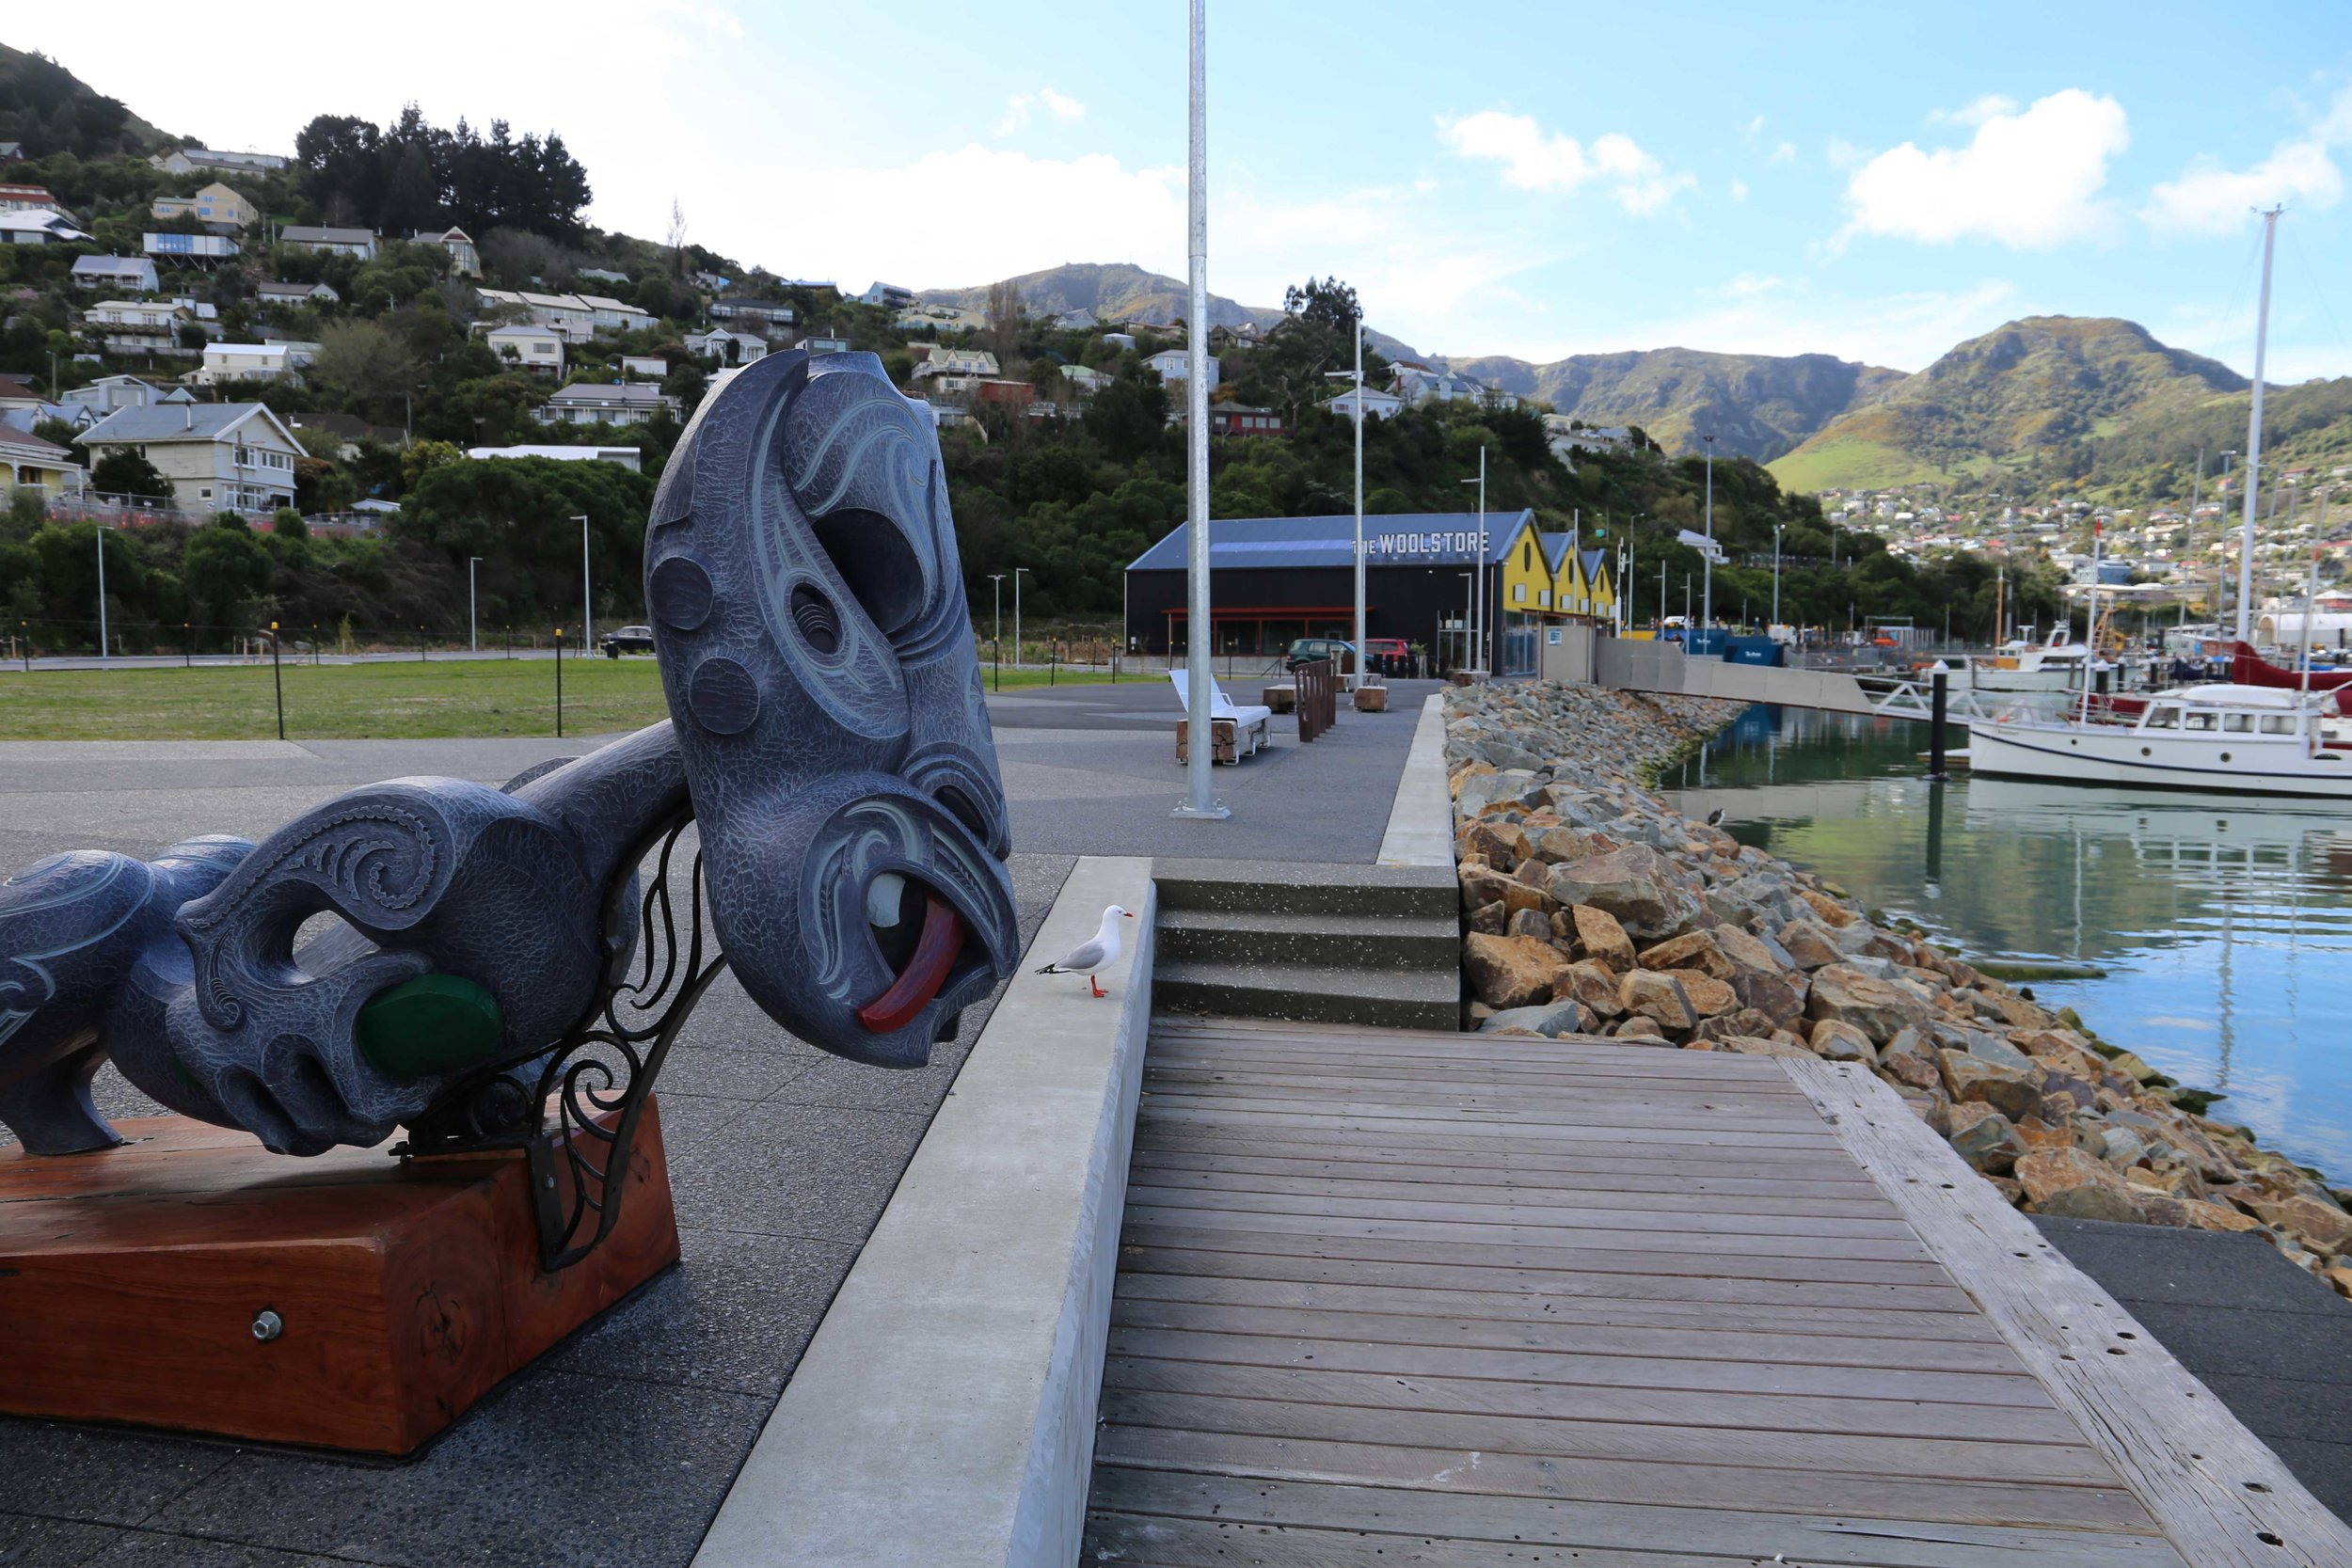 The tauihu sculpture created by Whakaraupo Carving overlooks the terrace of milled reclaimed wharf piles and out toward Lyttelton Harbour.